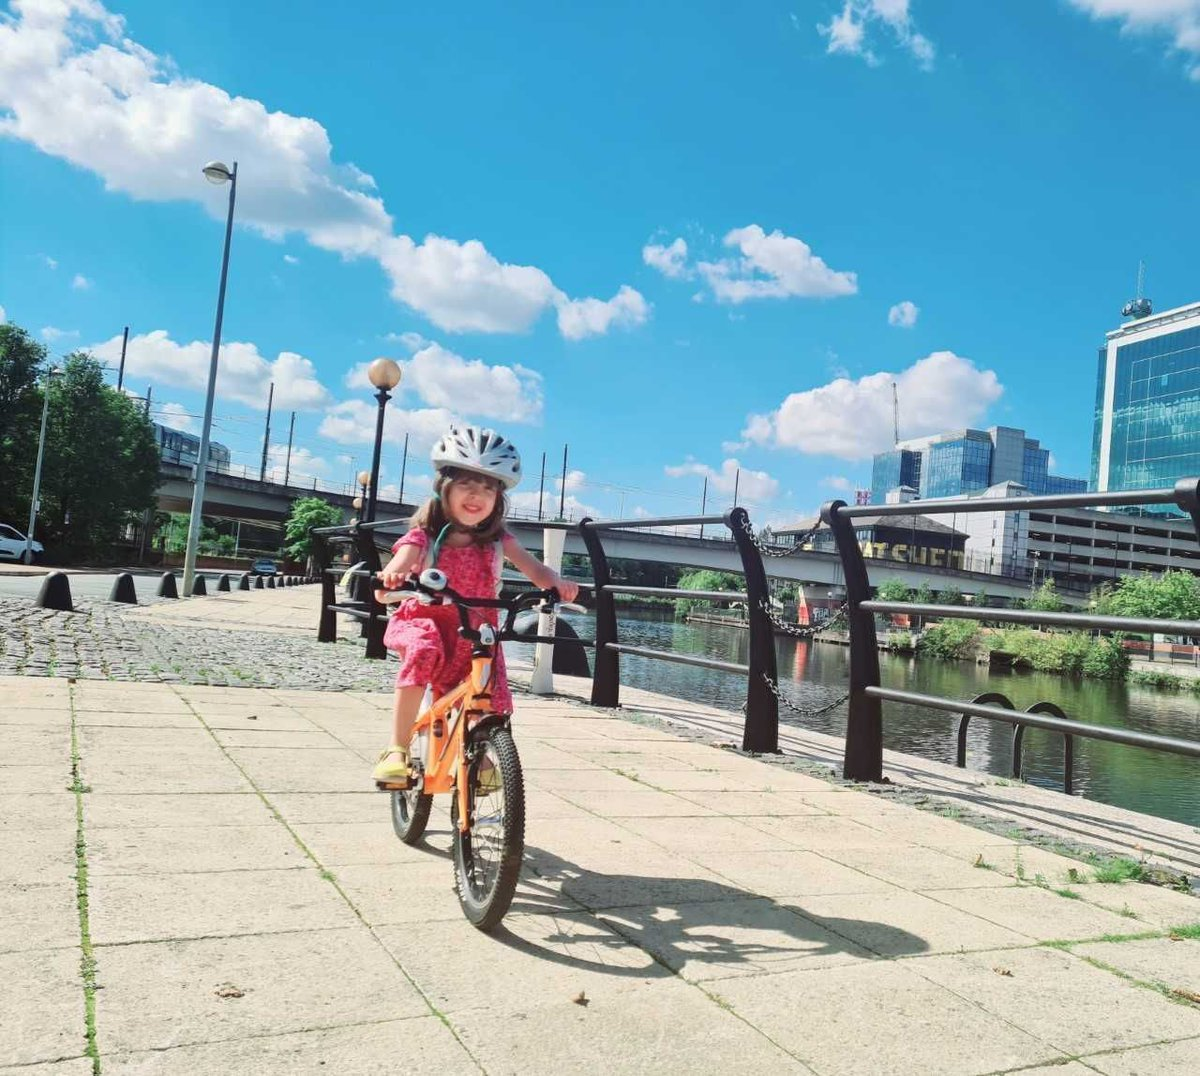 Learning to ride a #bike is an important milestone for any child   #Cycling can help to establish #healthy #exercise habits, improve #fitness & help maintain a positive mental attitude #Blackburn #Lancashire @East_LancsCC @blackburndarwen @CyclingUKNorth  https://t.co/oOeR3hL9WJ https://t.co/awO0FKE9MF